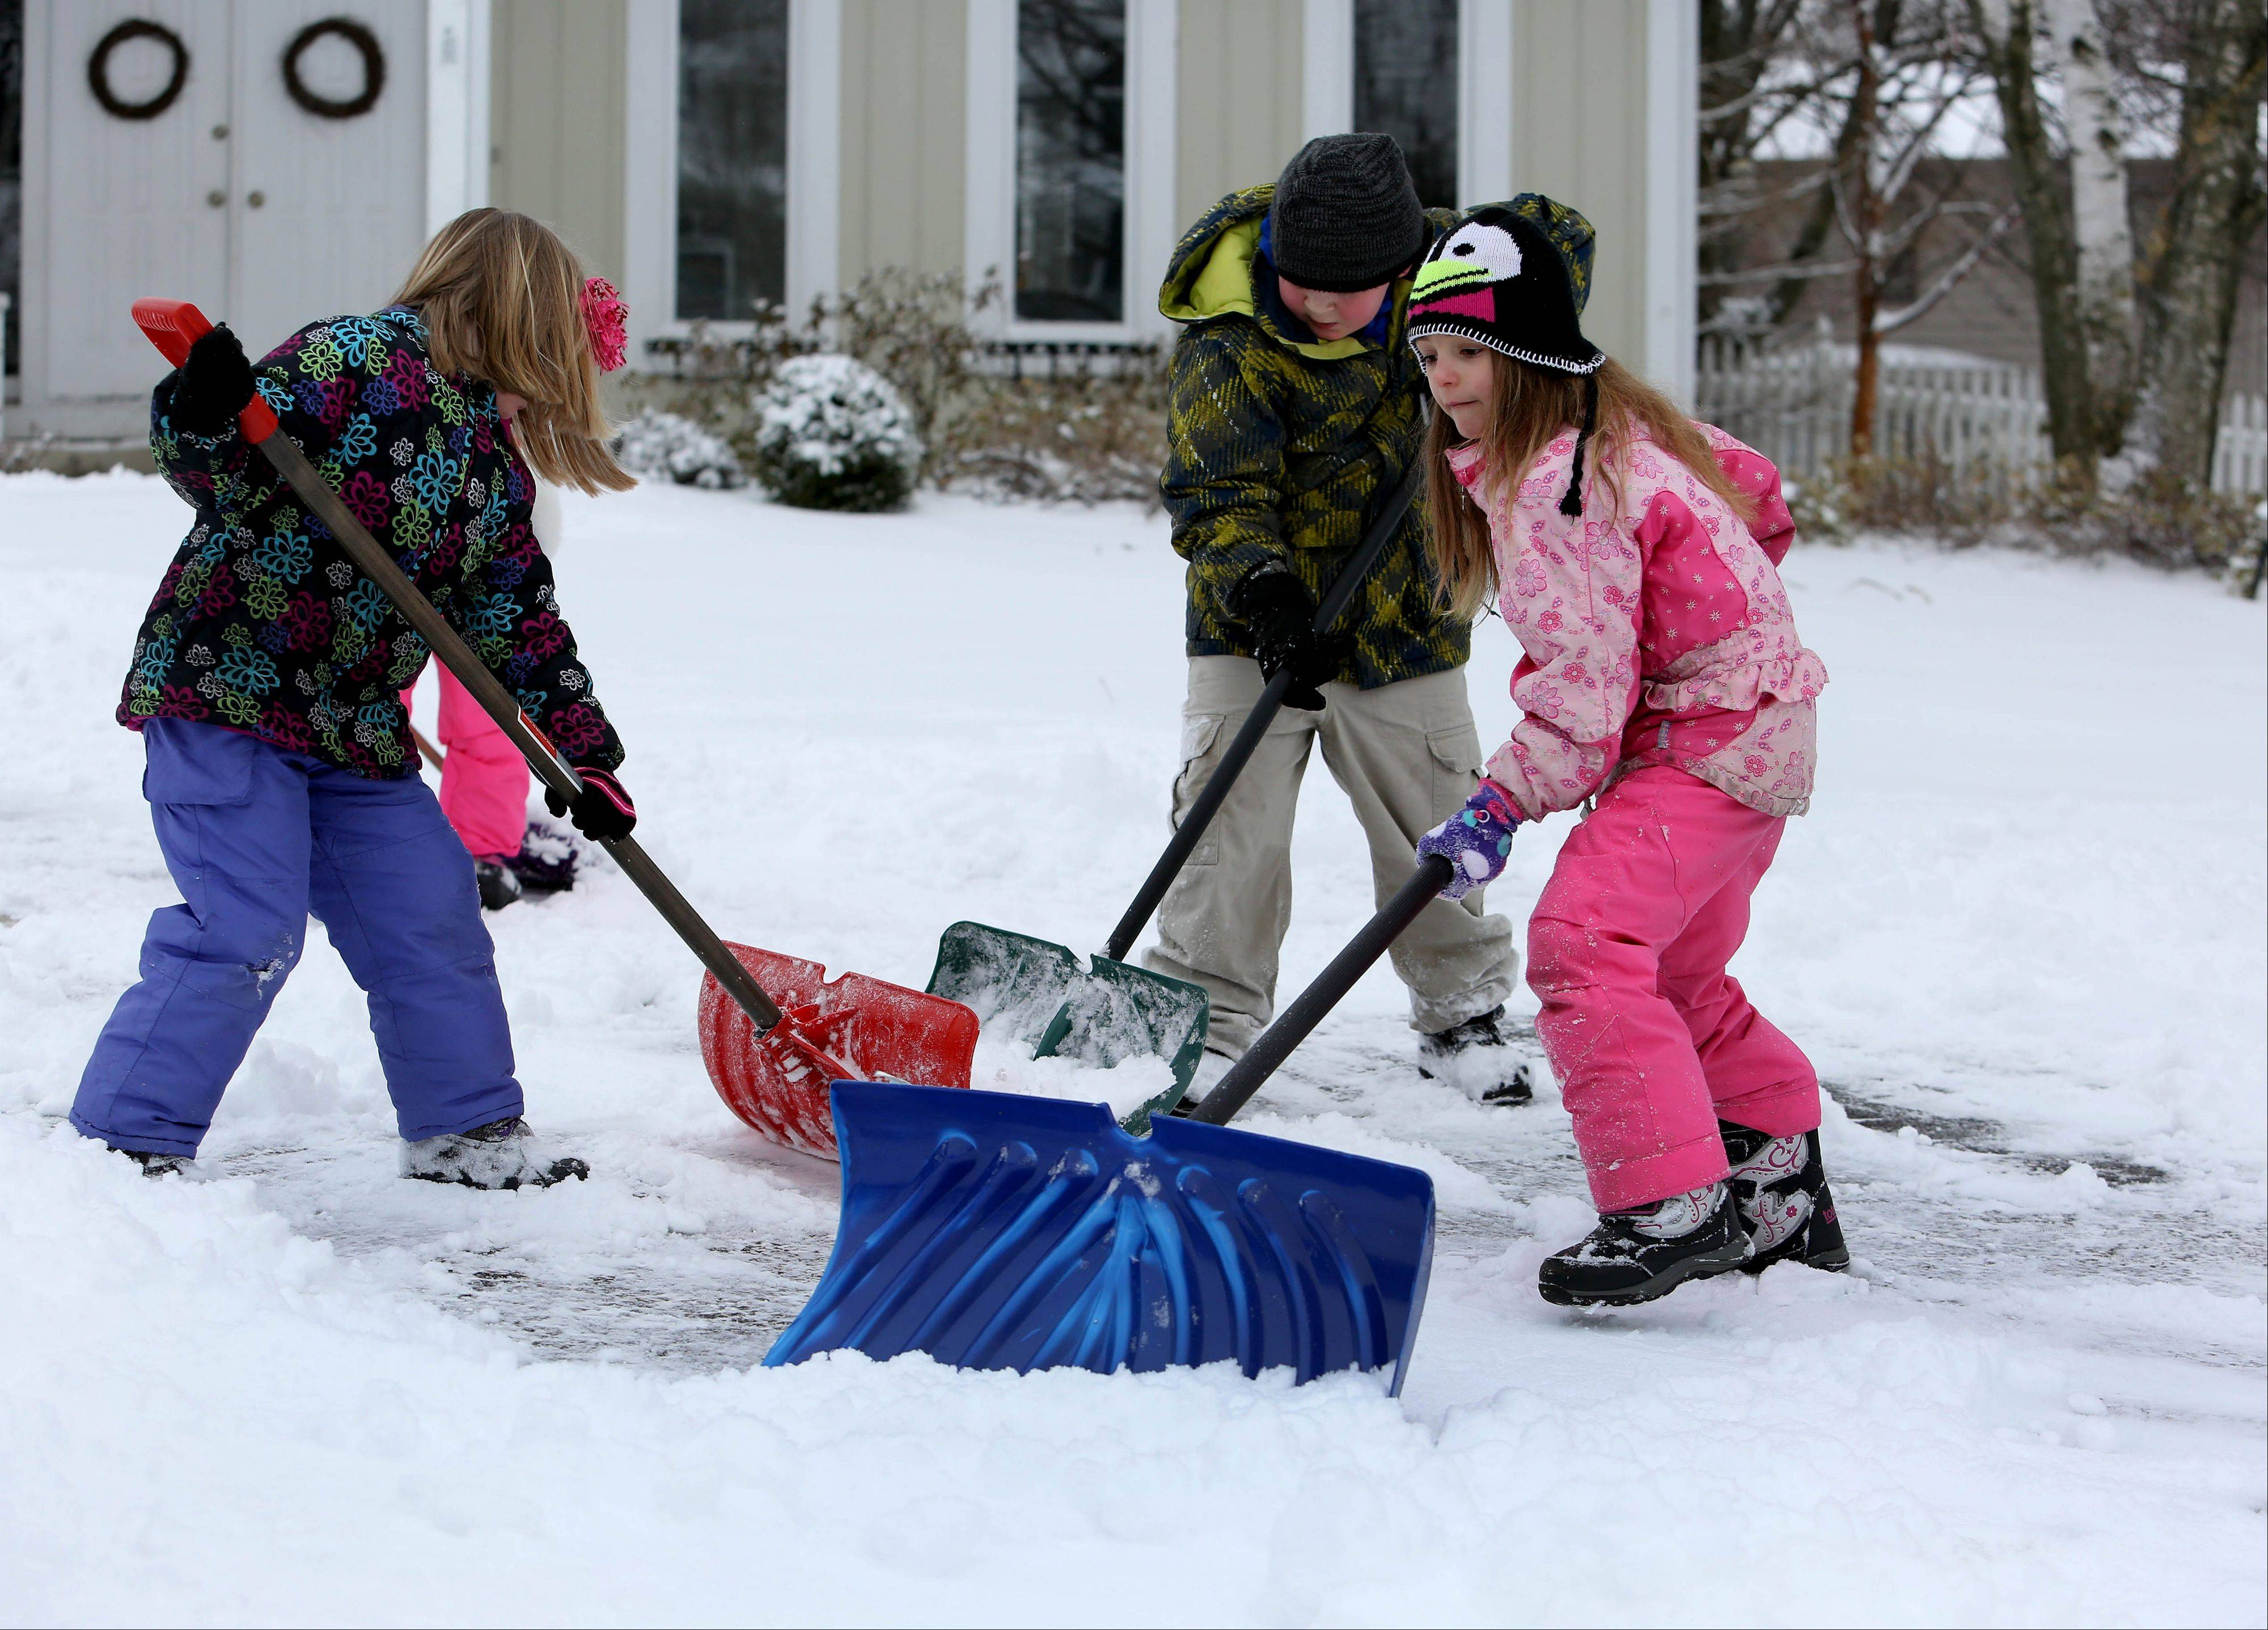 Colette Knierin, 6, Cade Knierin, 9, and Lilly Berta, 6, work to clear the driveway before school Friday after an overnight storm dumped several inches of snow on Naperville.